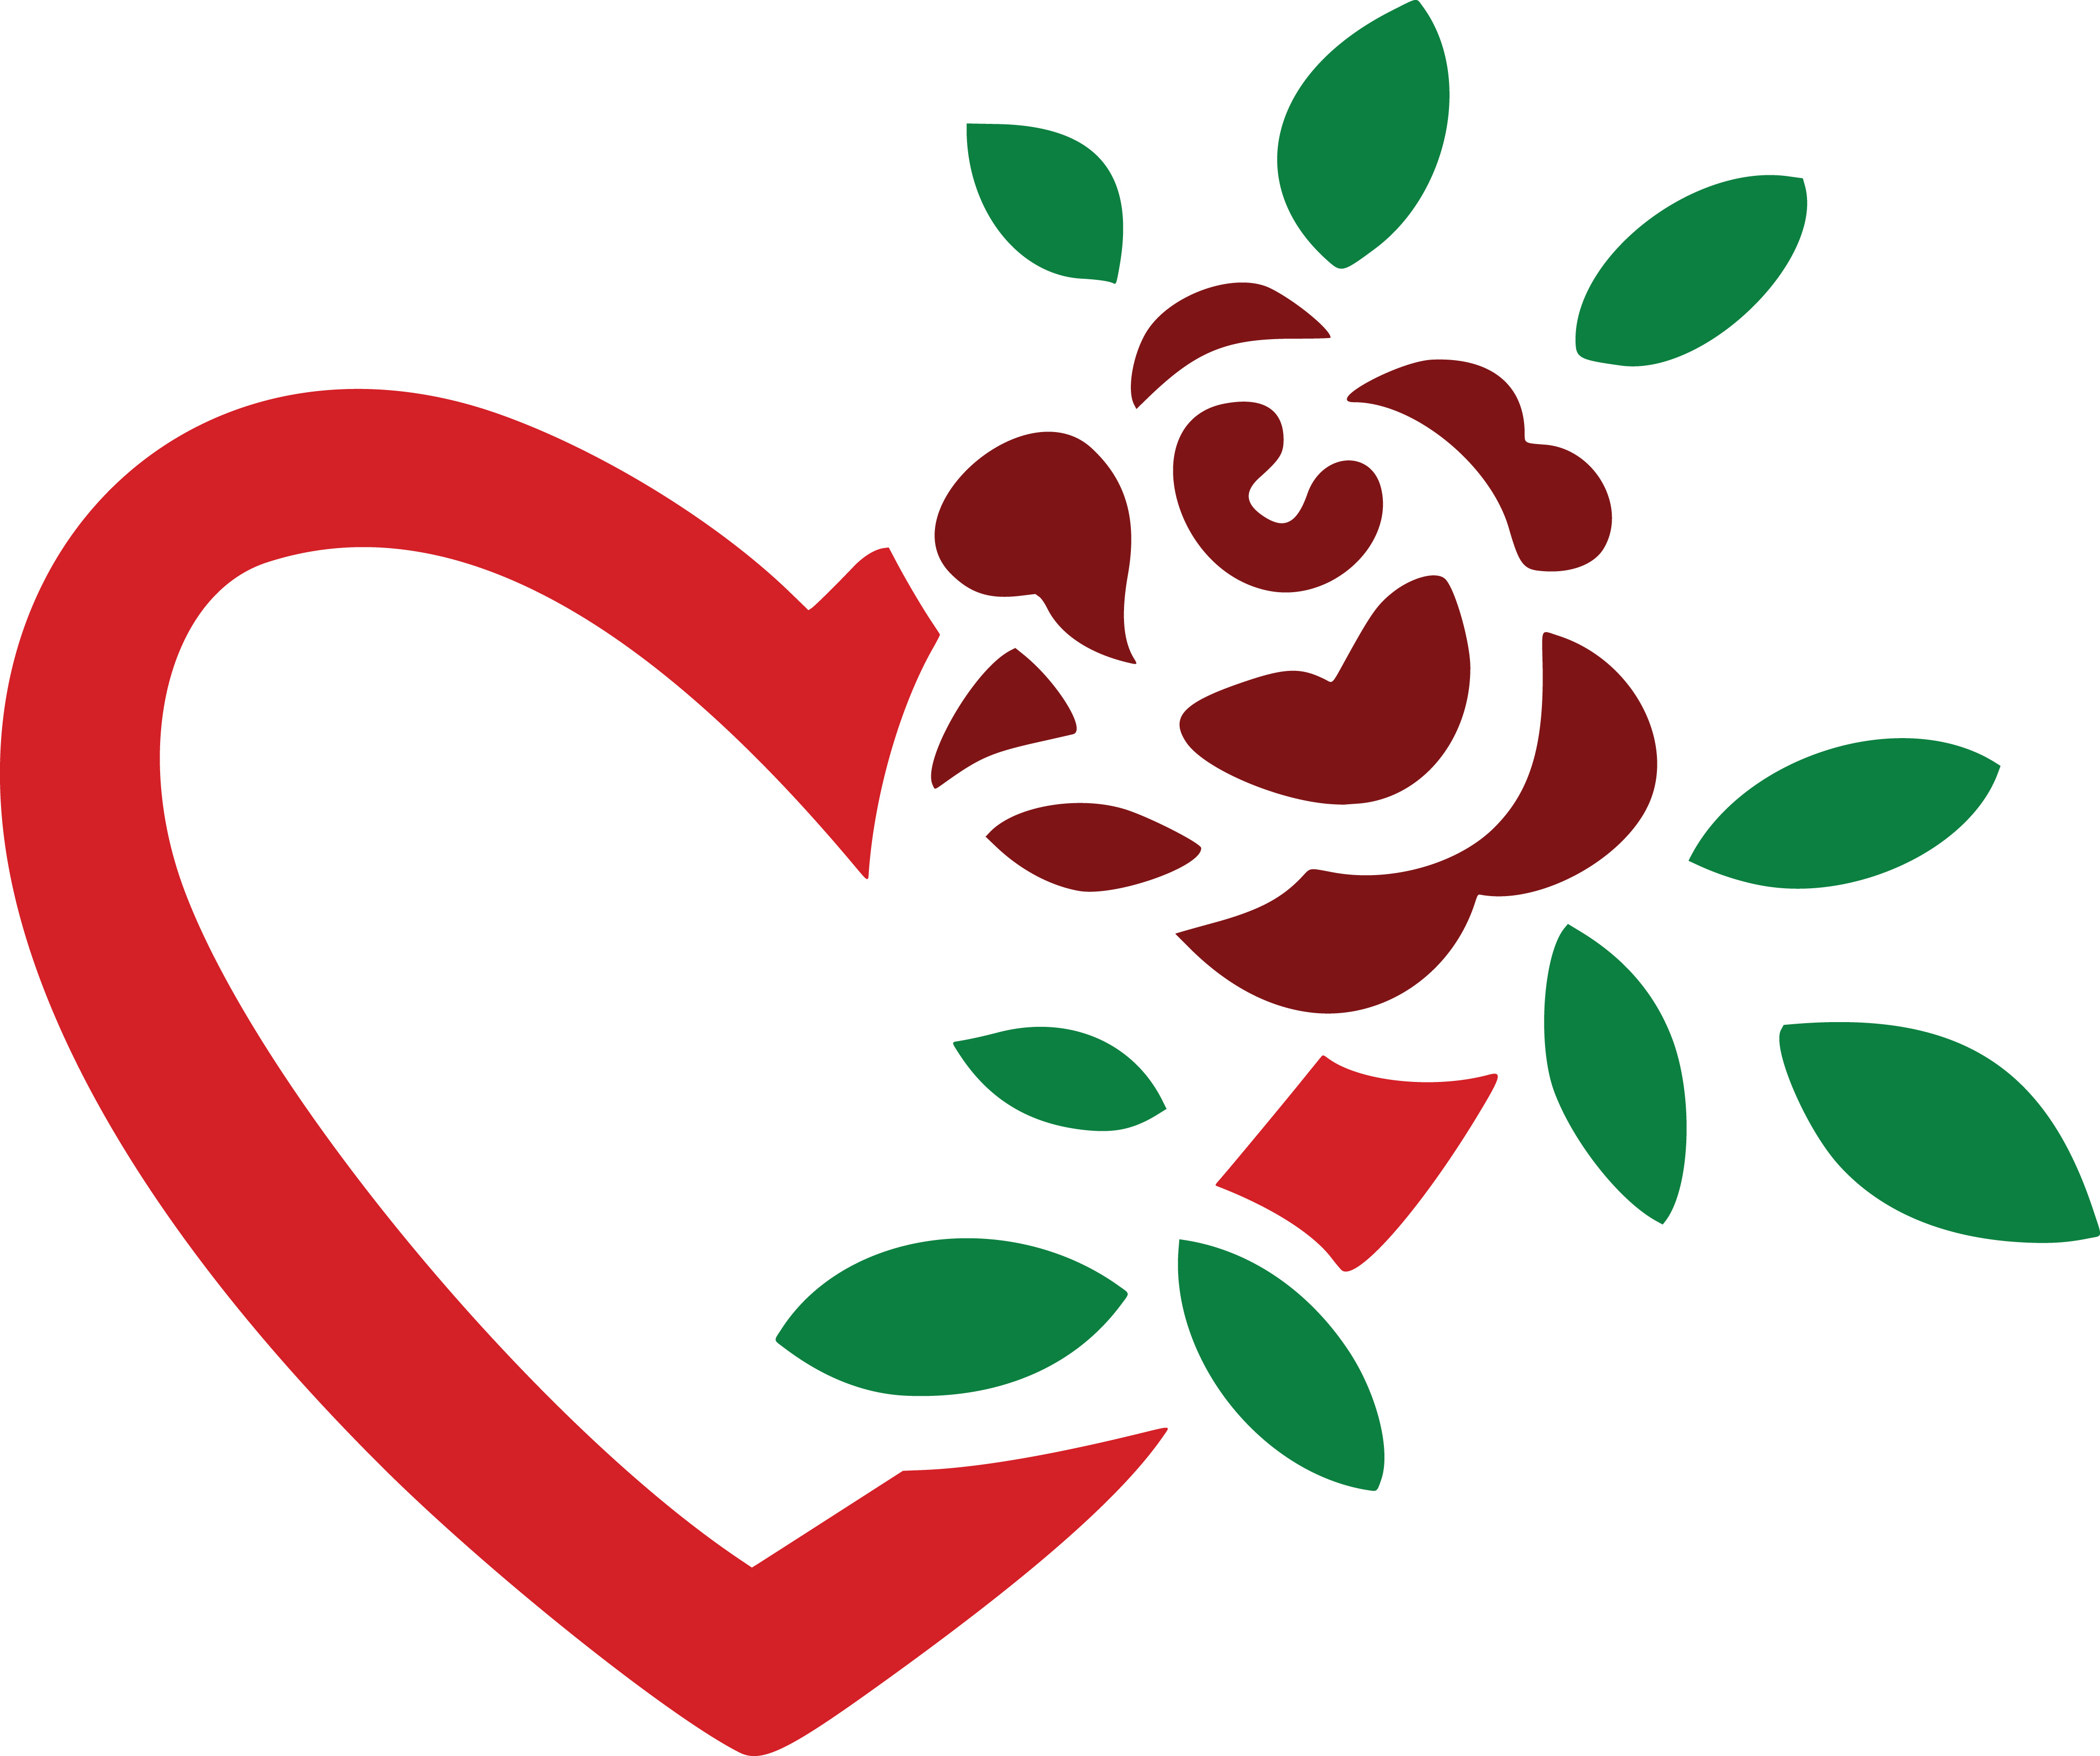 Love clipart. Hearts and roses at